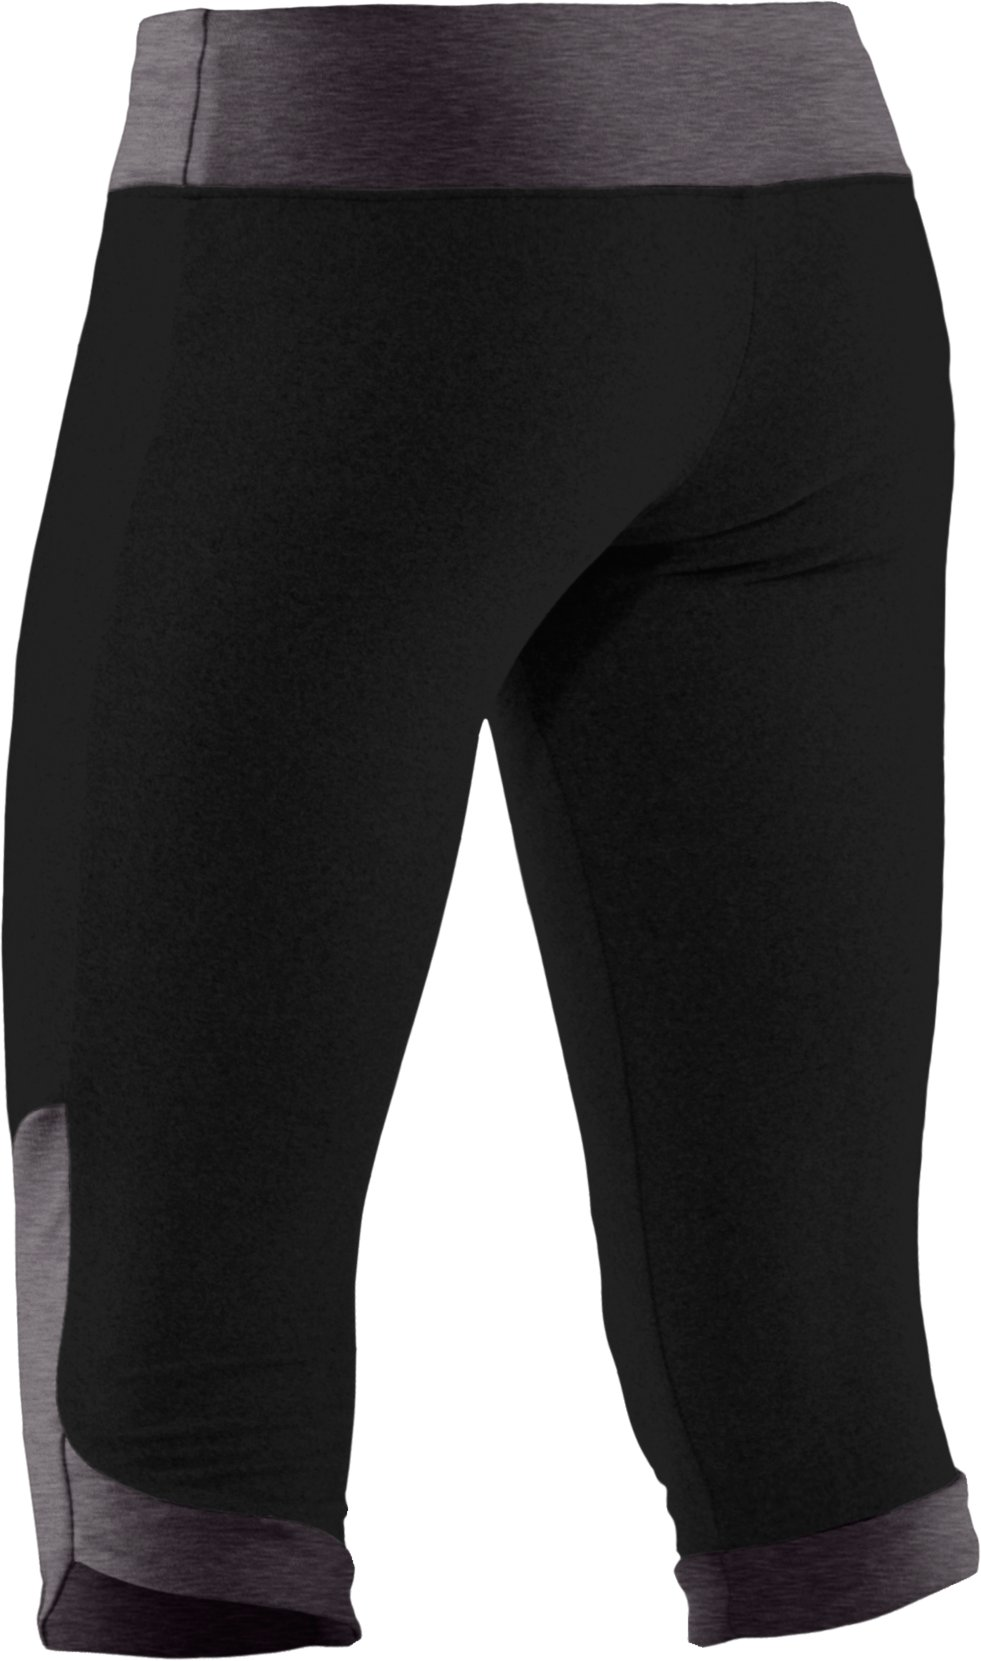 Girls' HeatGear® Touch Fitted Capri, Black